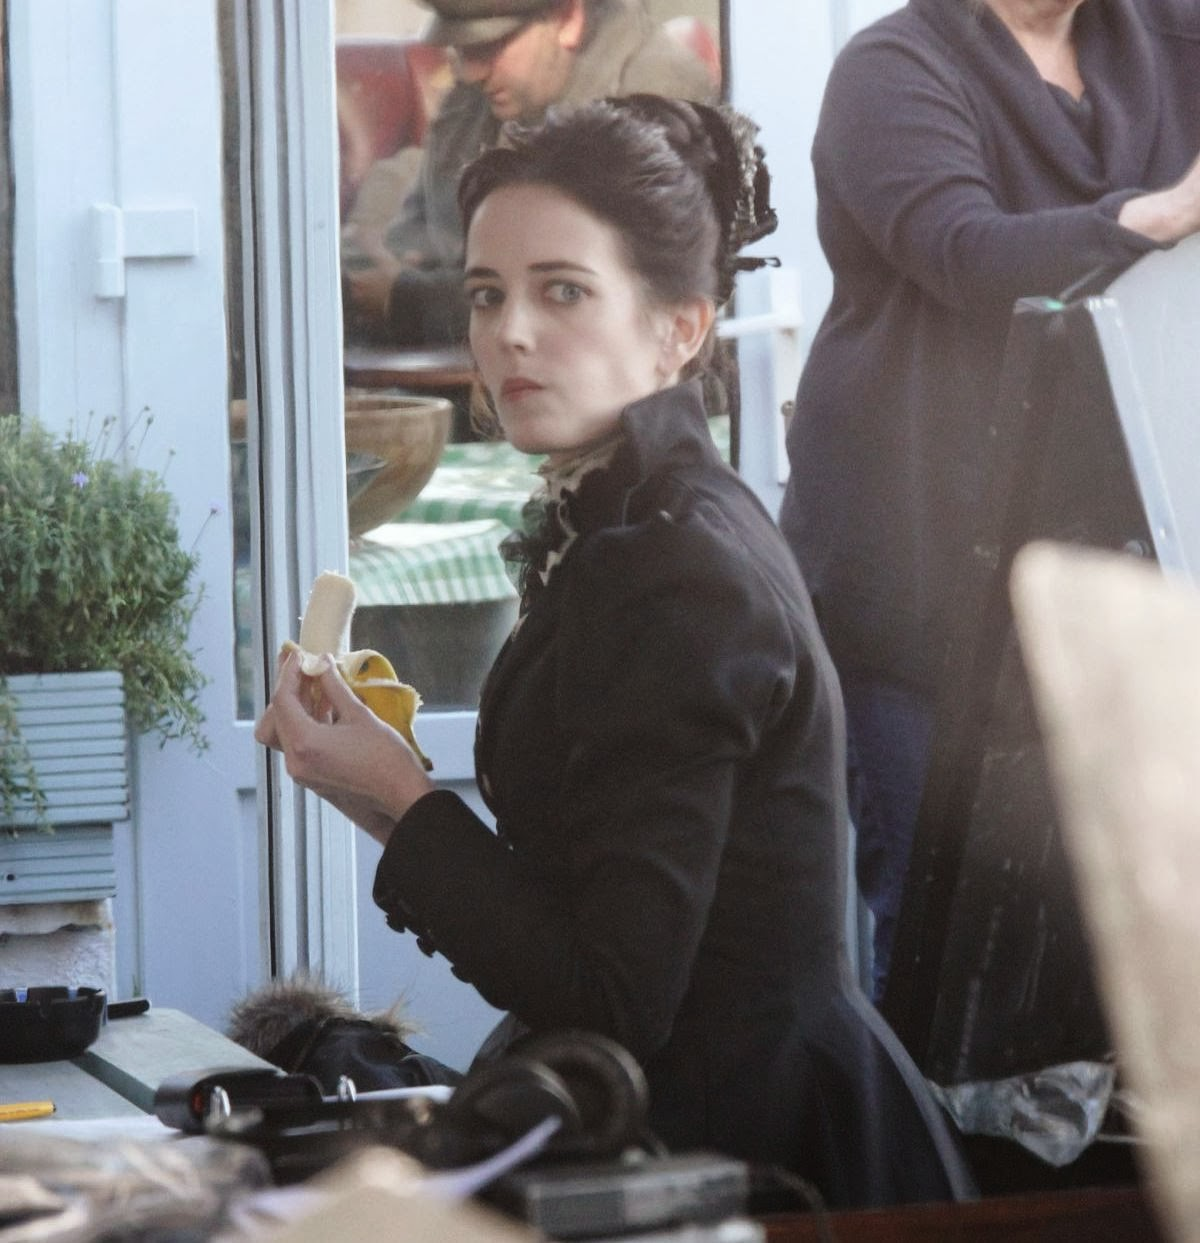 http://2.bp.blogspot.com/-x-yPNBSSWCE/Ut2KXP3VpxI/AAAAAAAAQgo/2n1CczQyC6o/s1600/eva-green-on-the-set-of-penny-dreadful-in-ireland_10.jpg